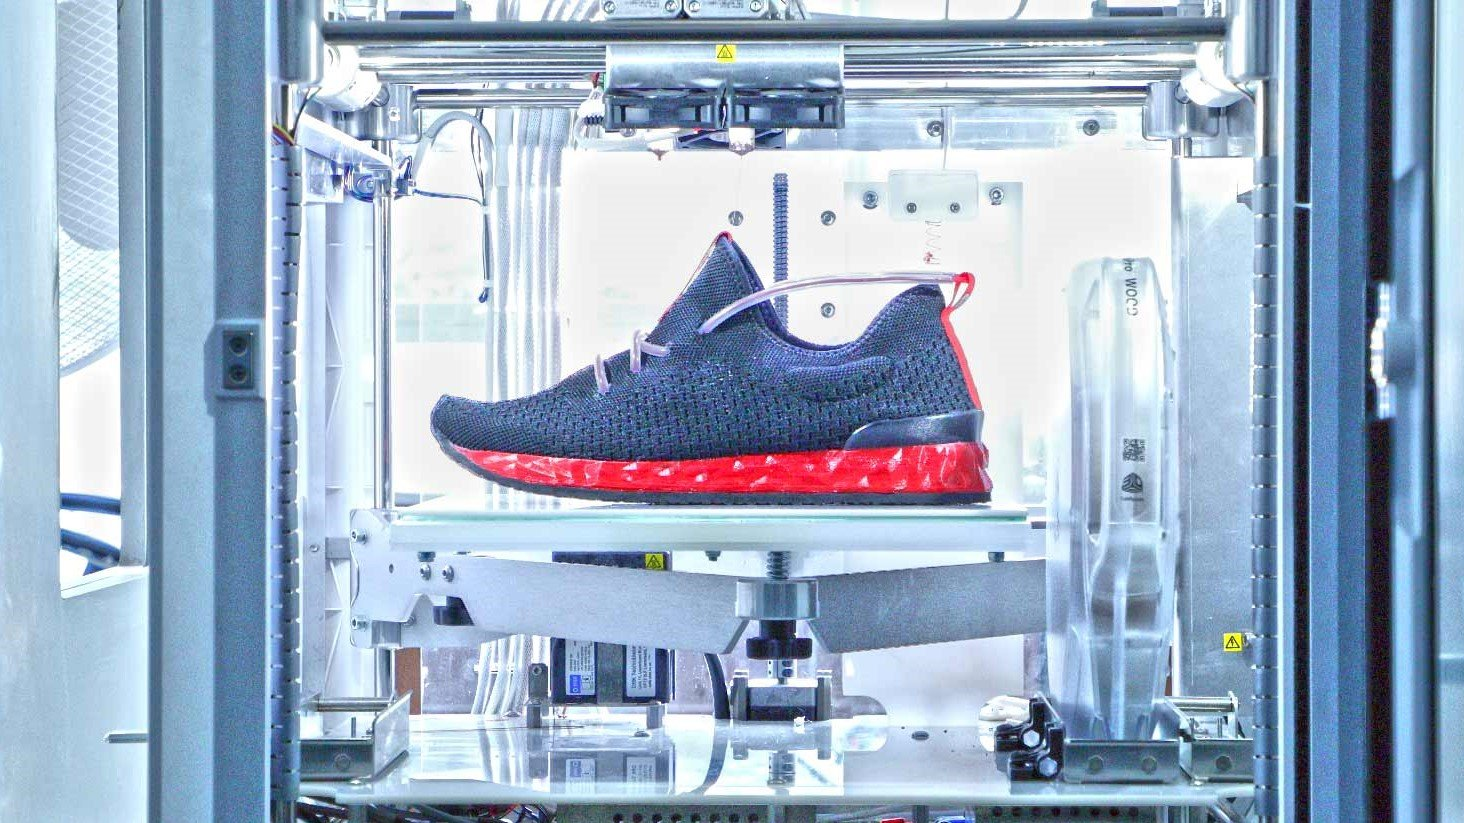 3D Printed Shoes in 2020: Big Brands Are on Board | All3DP